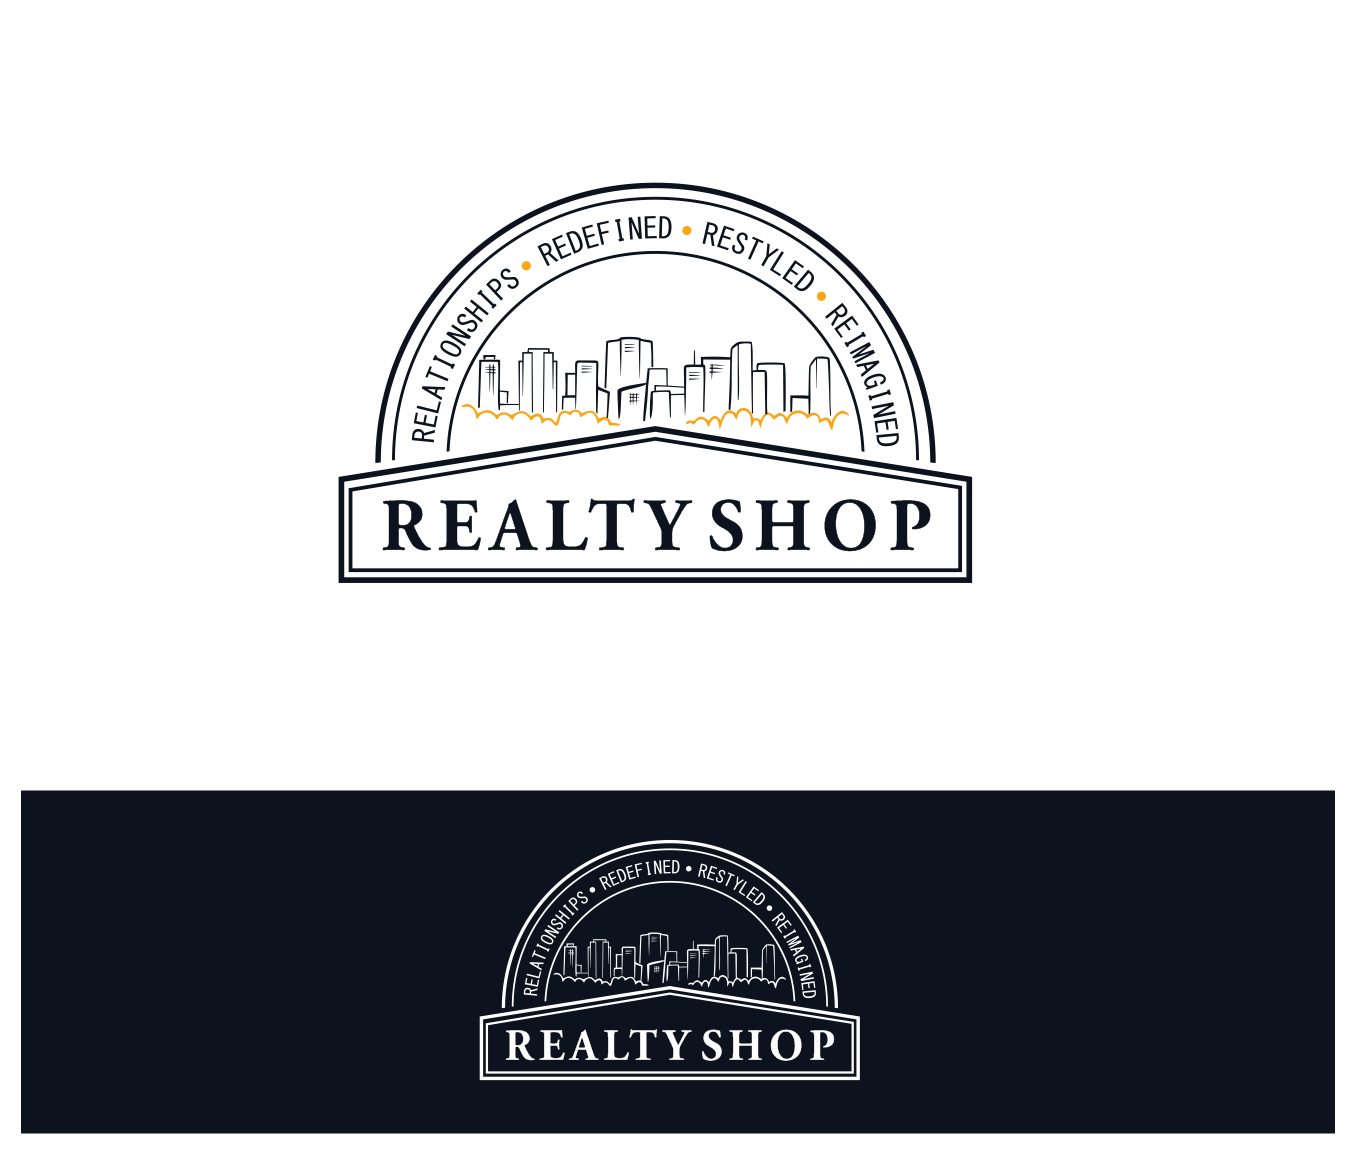 Design an Edgy, Agressive, yet still fun logo for The Realty Shop